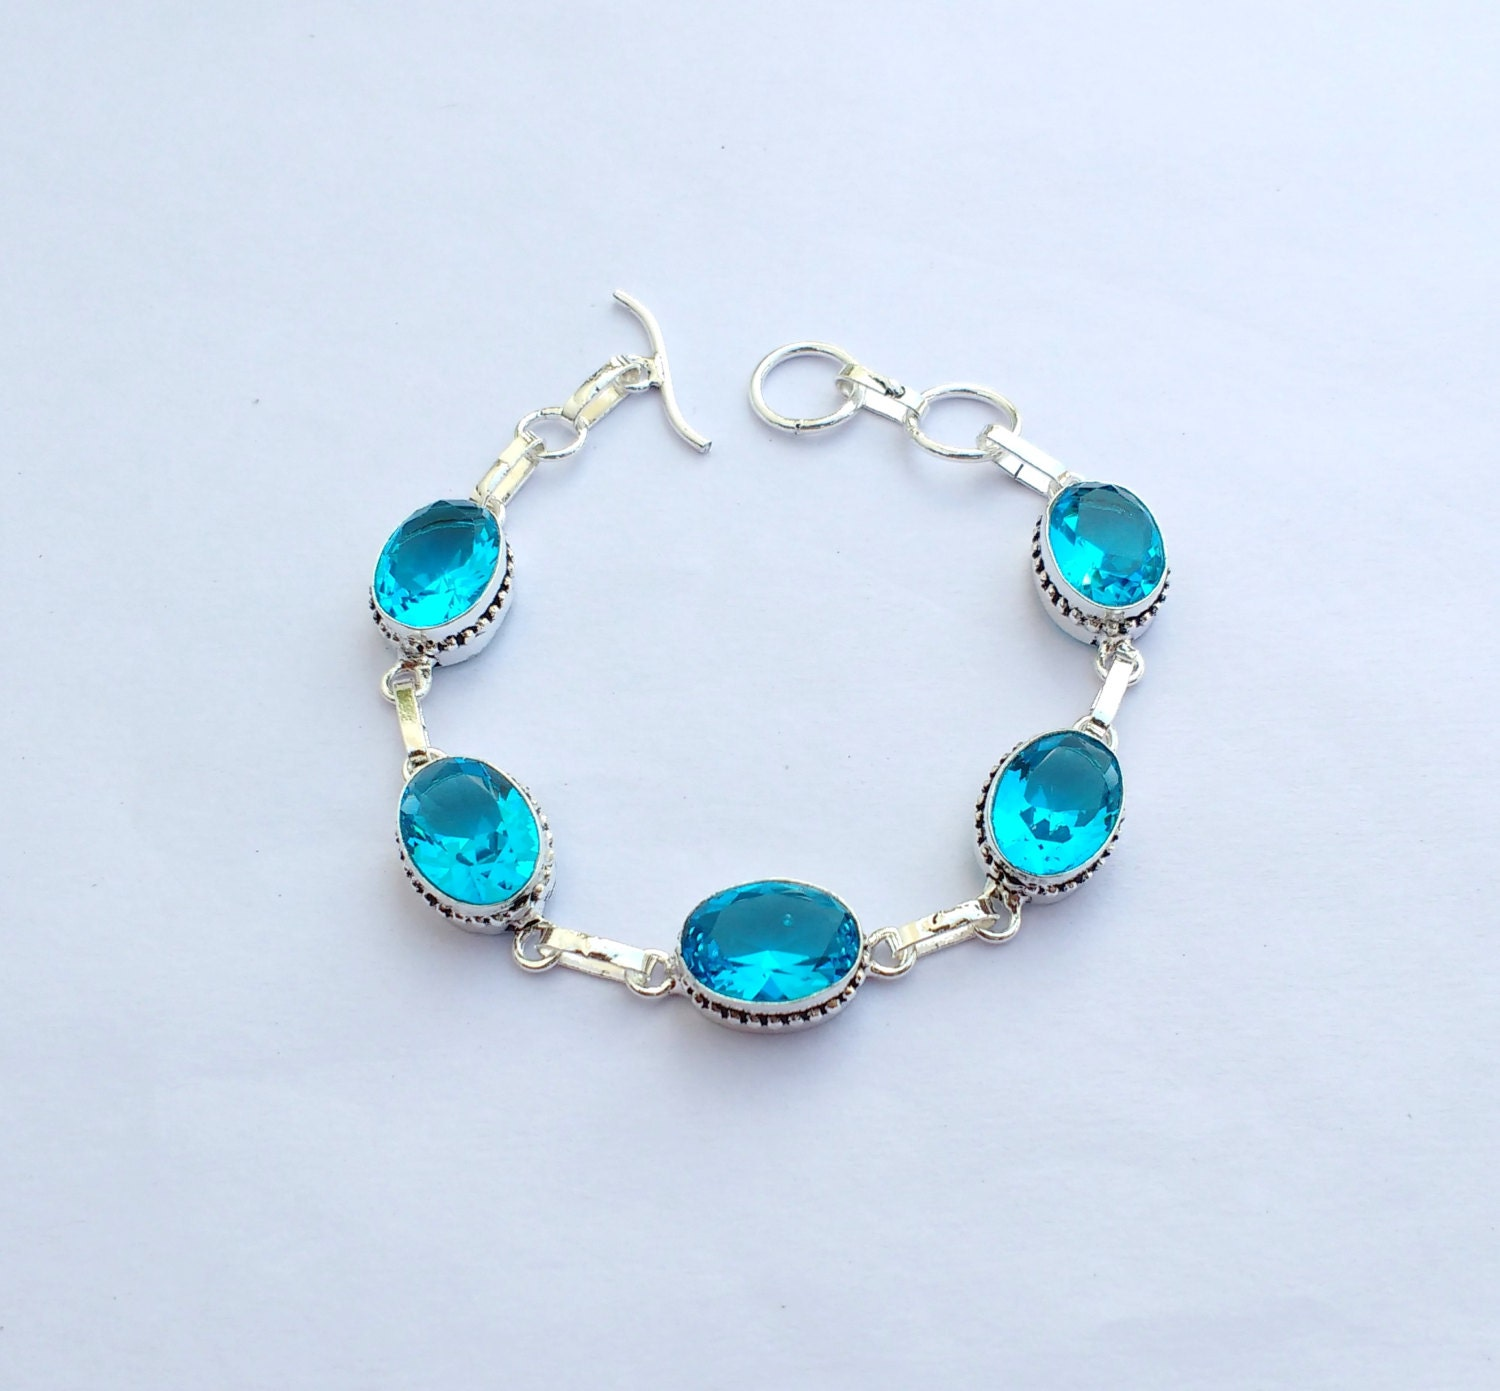 Adjustable Blue Topaz Bracelet Sterling Silver Handmade